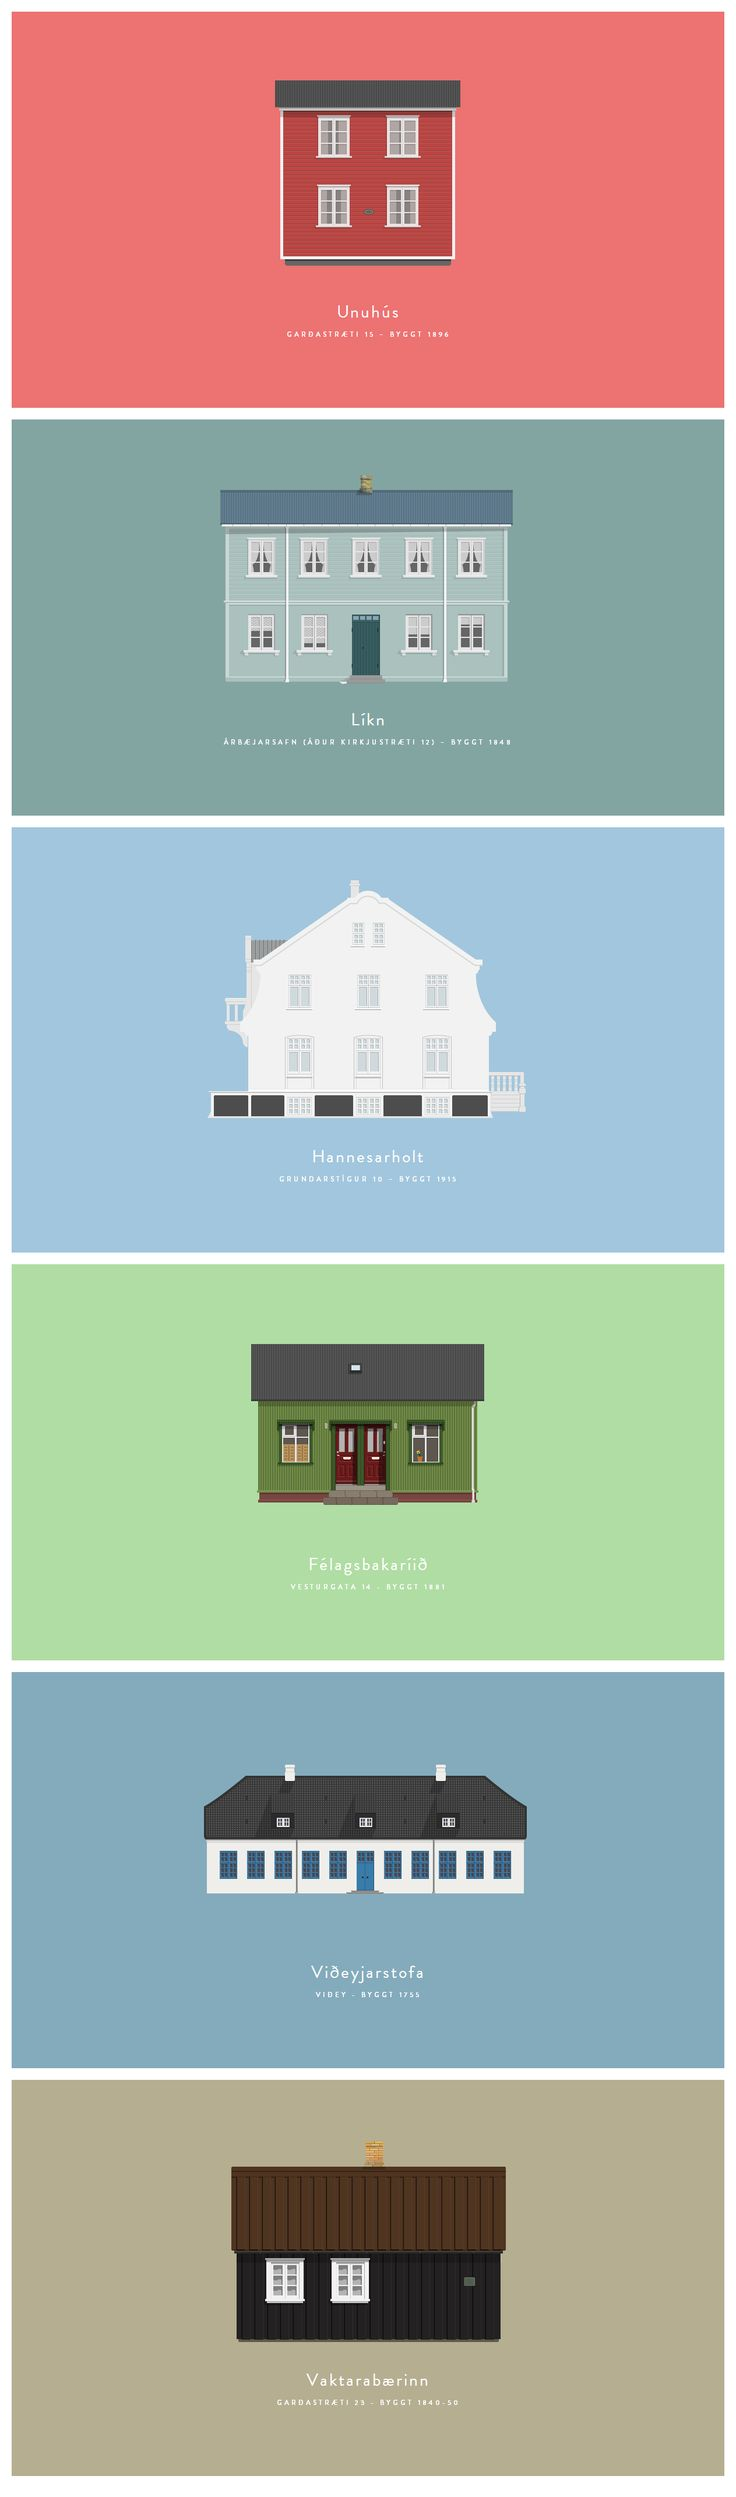 Houses of Reykjavik: Reykjavik Posters, Iceland Houses, Houses Illustrations, Historical Houses, Del Window, Colour Illustrations, Posters Art, Historical Posters, Illustrations Houses